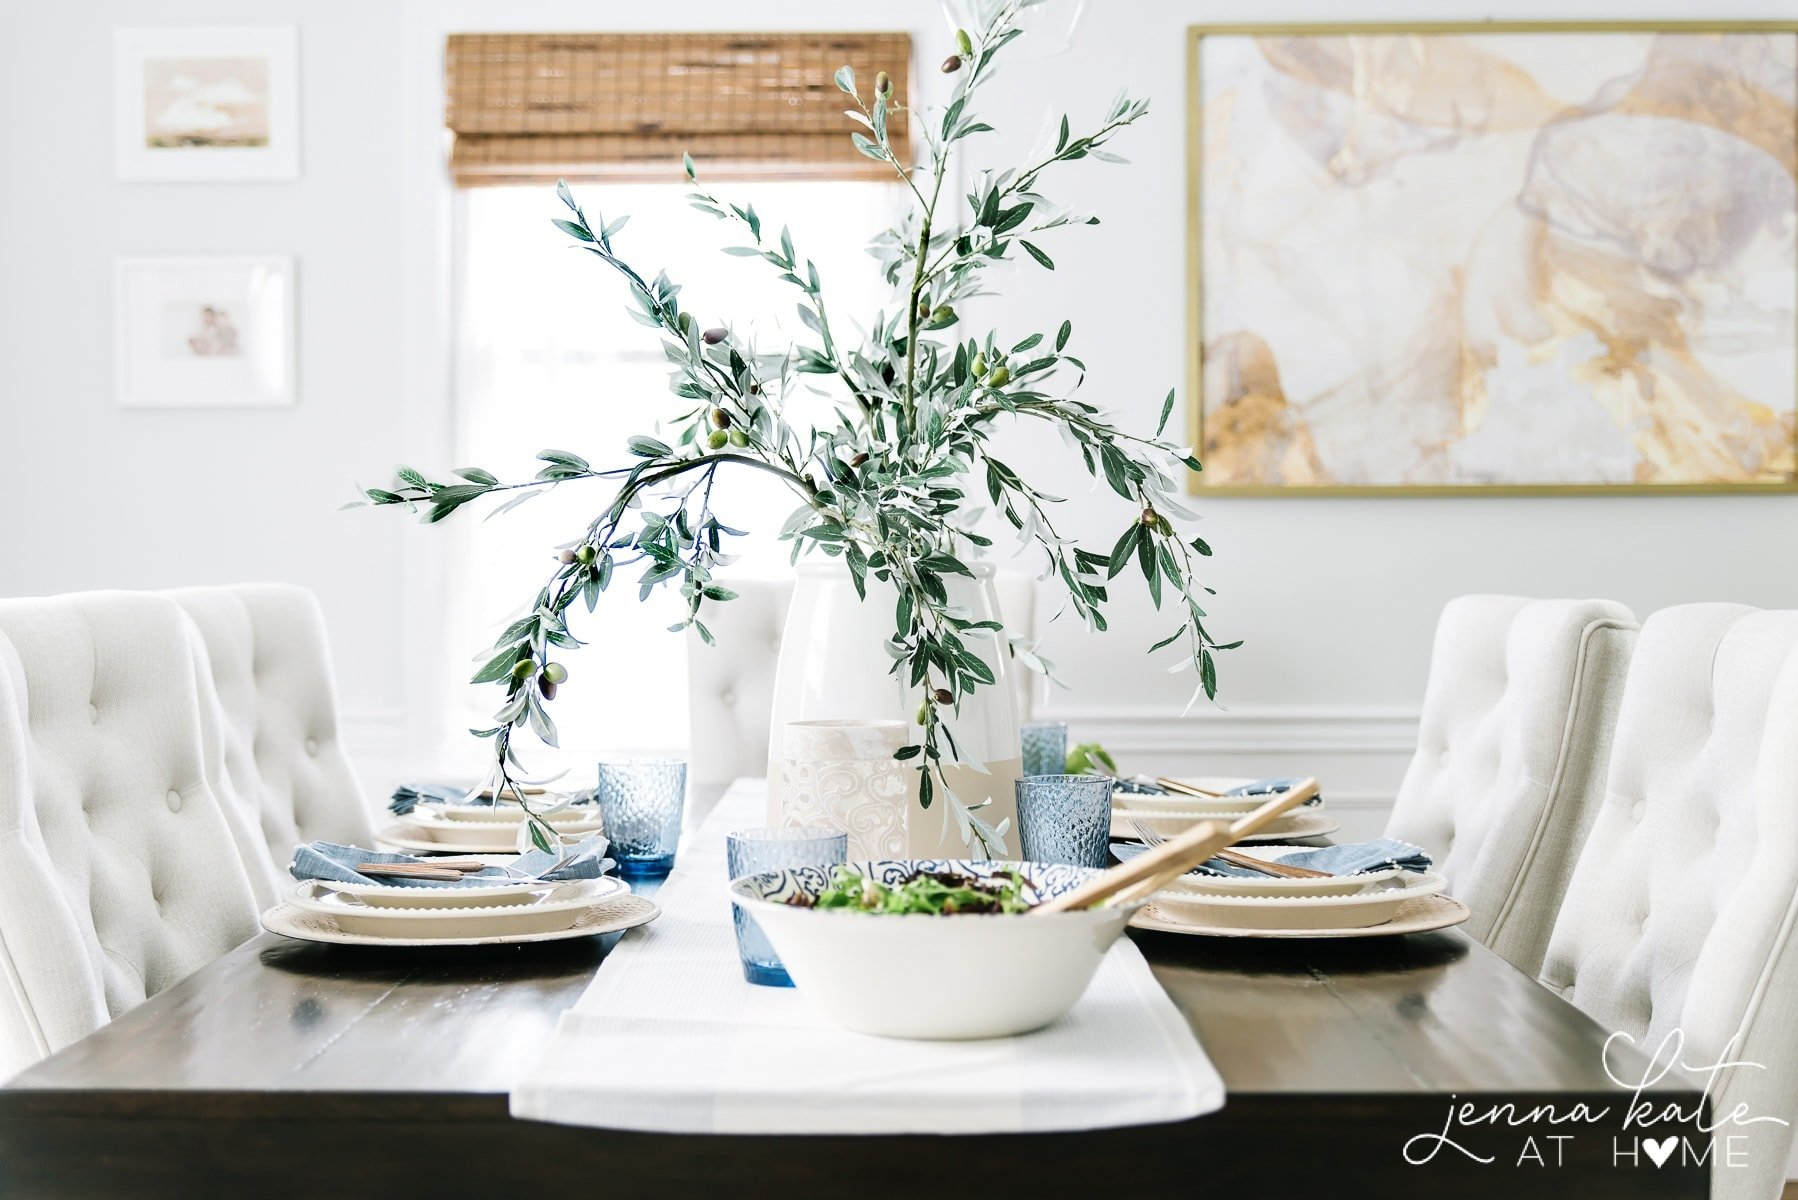 summer table setting with white and blue